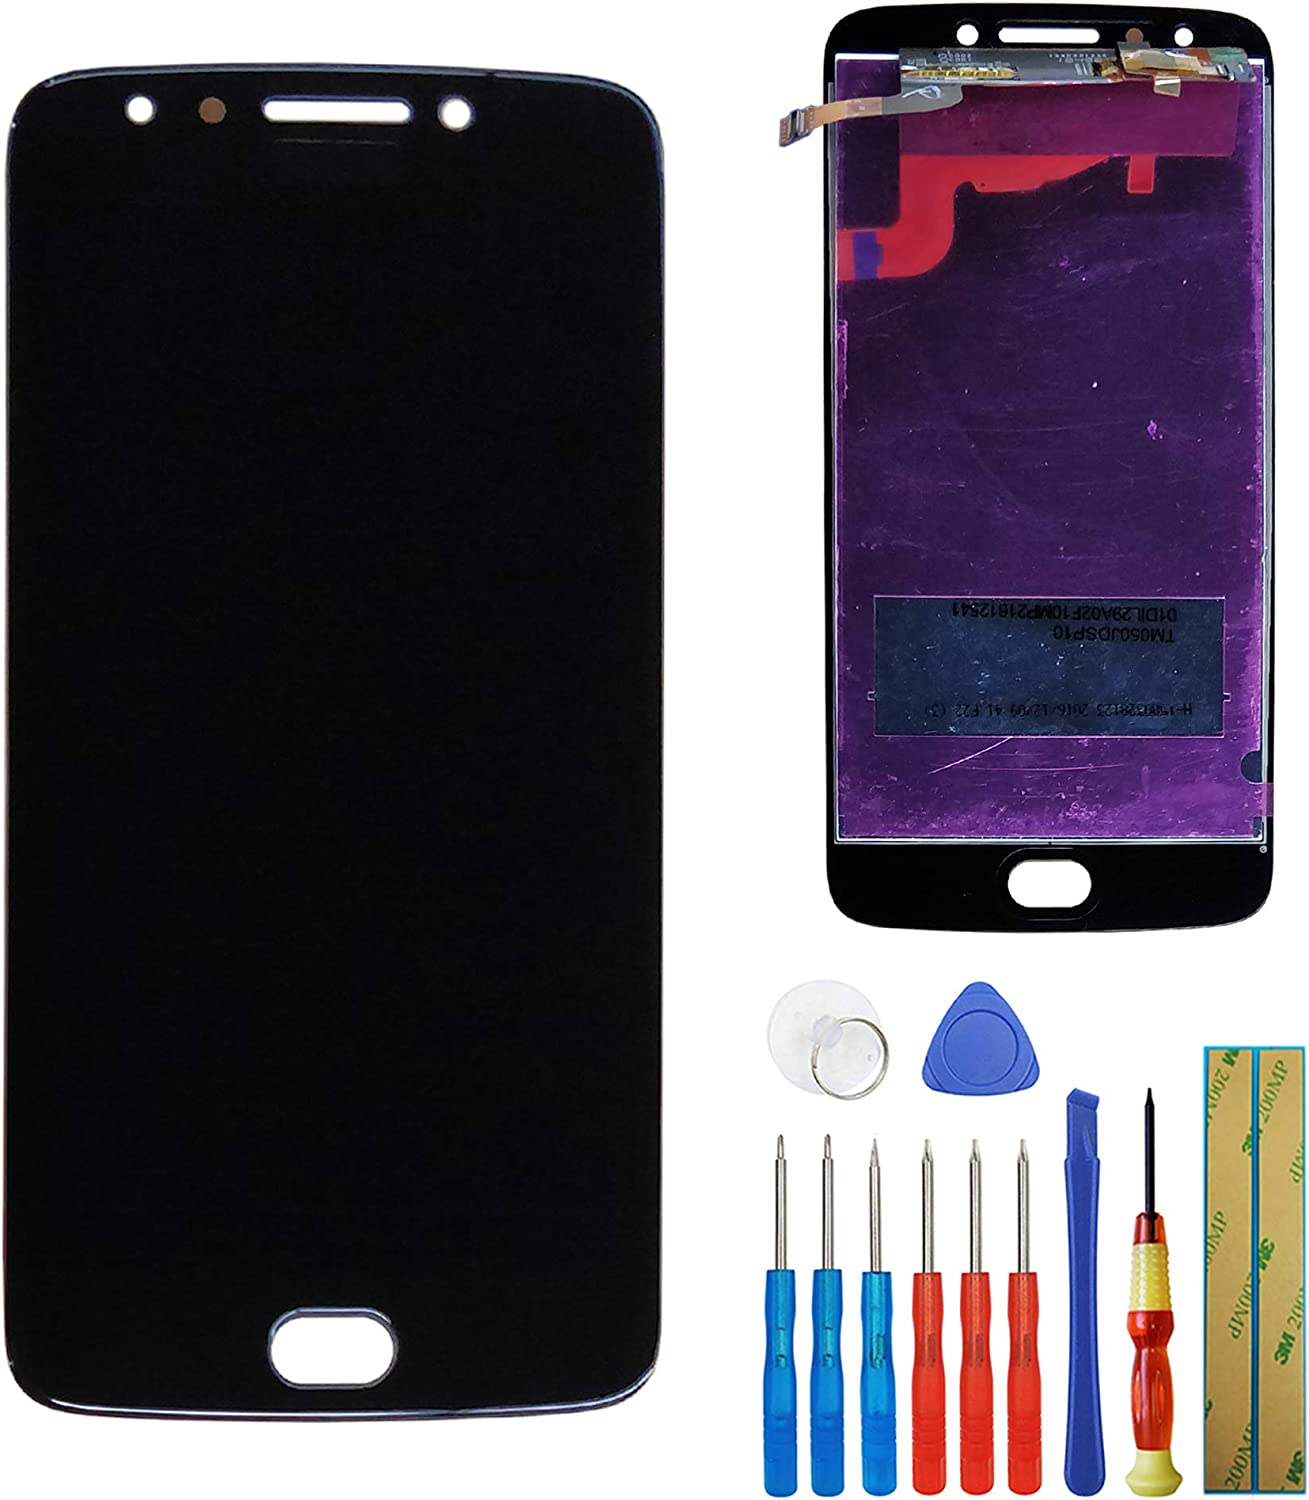 LCD Touch Screen Compatible with Motorola Moto E4 E 4 Gen XT1767 XT1768 Display Assembly Digitizer with Tools (Black)